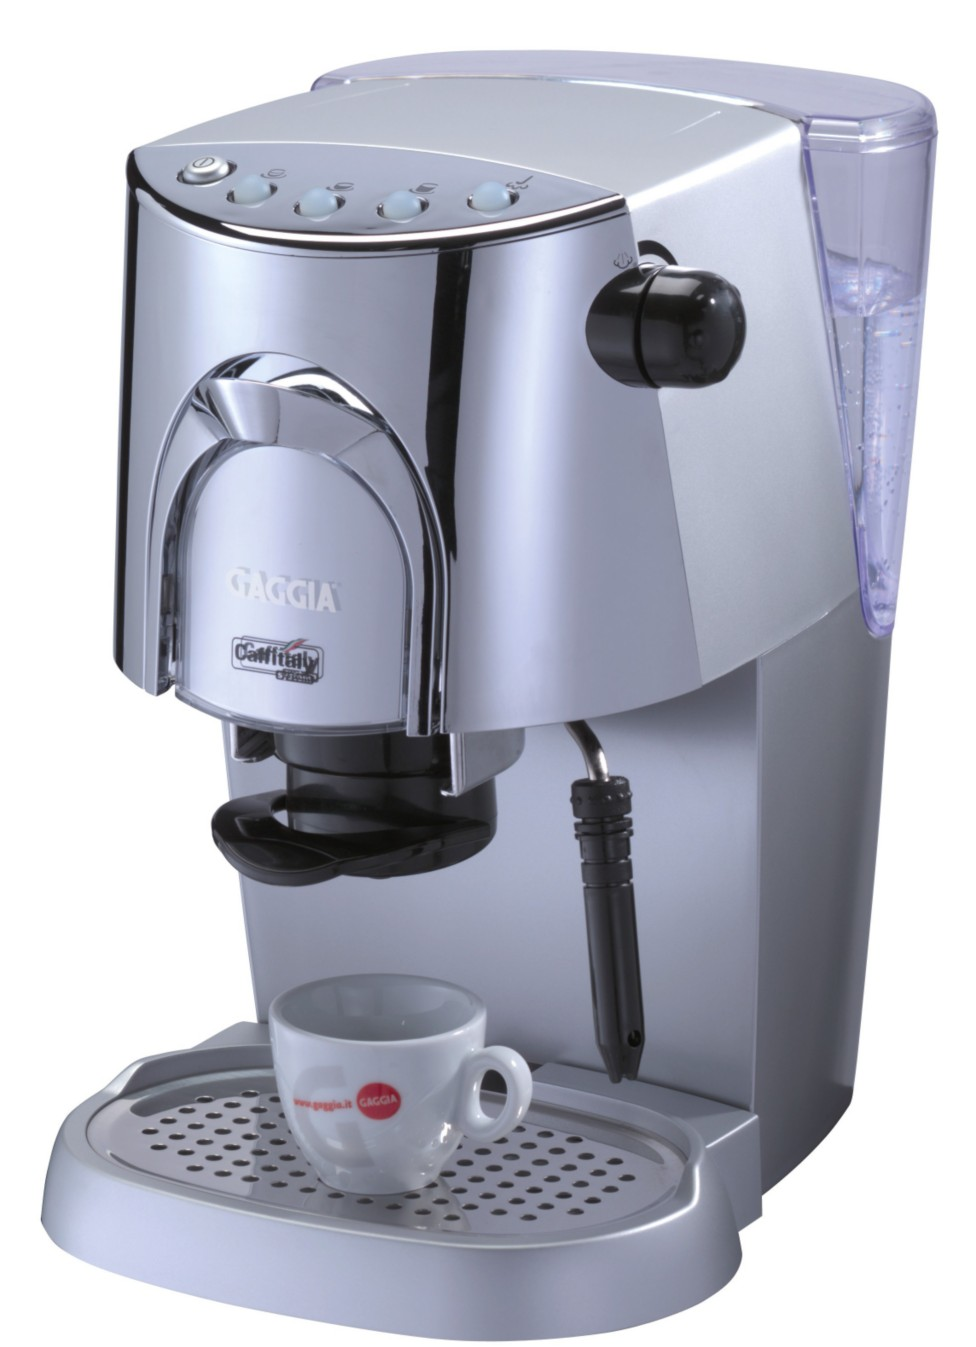 Gaggia Baby Coffee Maker Review : Gaggia K111D Coffee Maker - review, compare prices, buy online